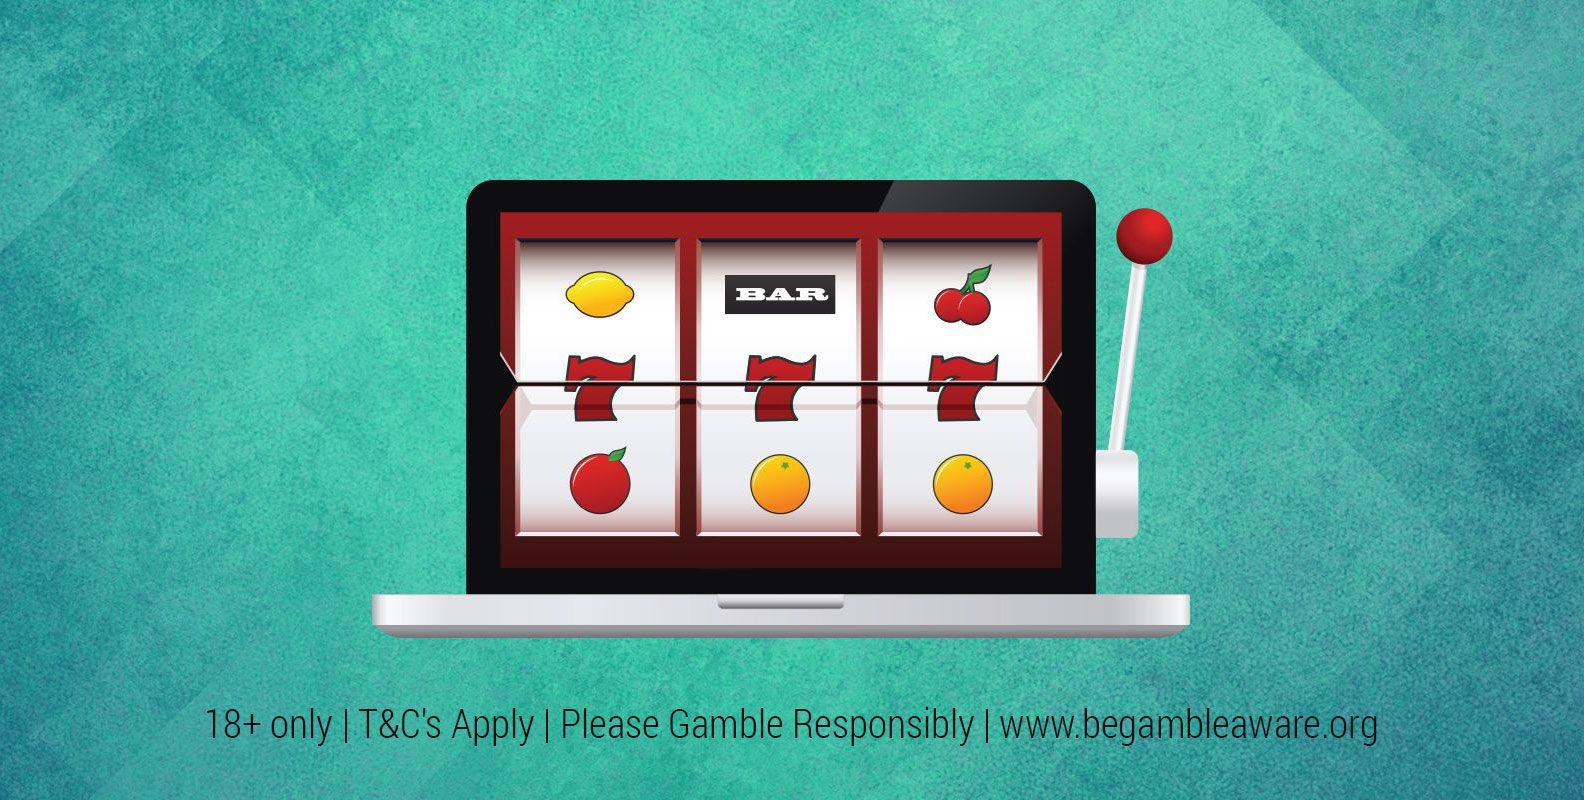 Certainly, the new casino sites and online slots provide